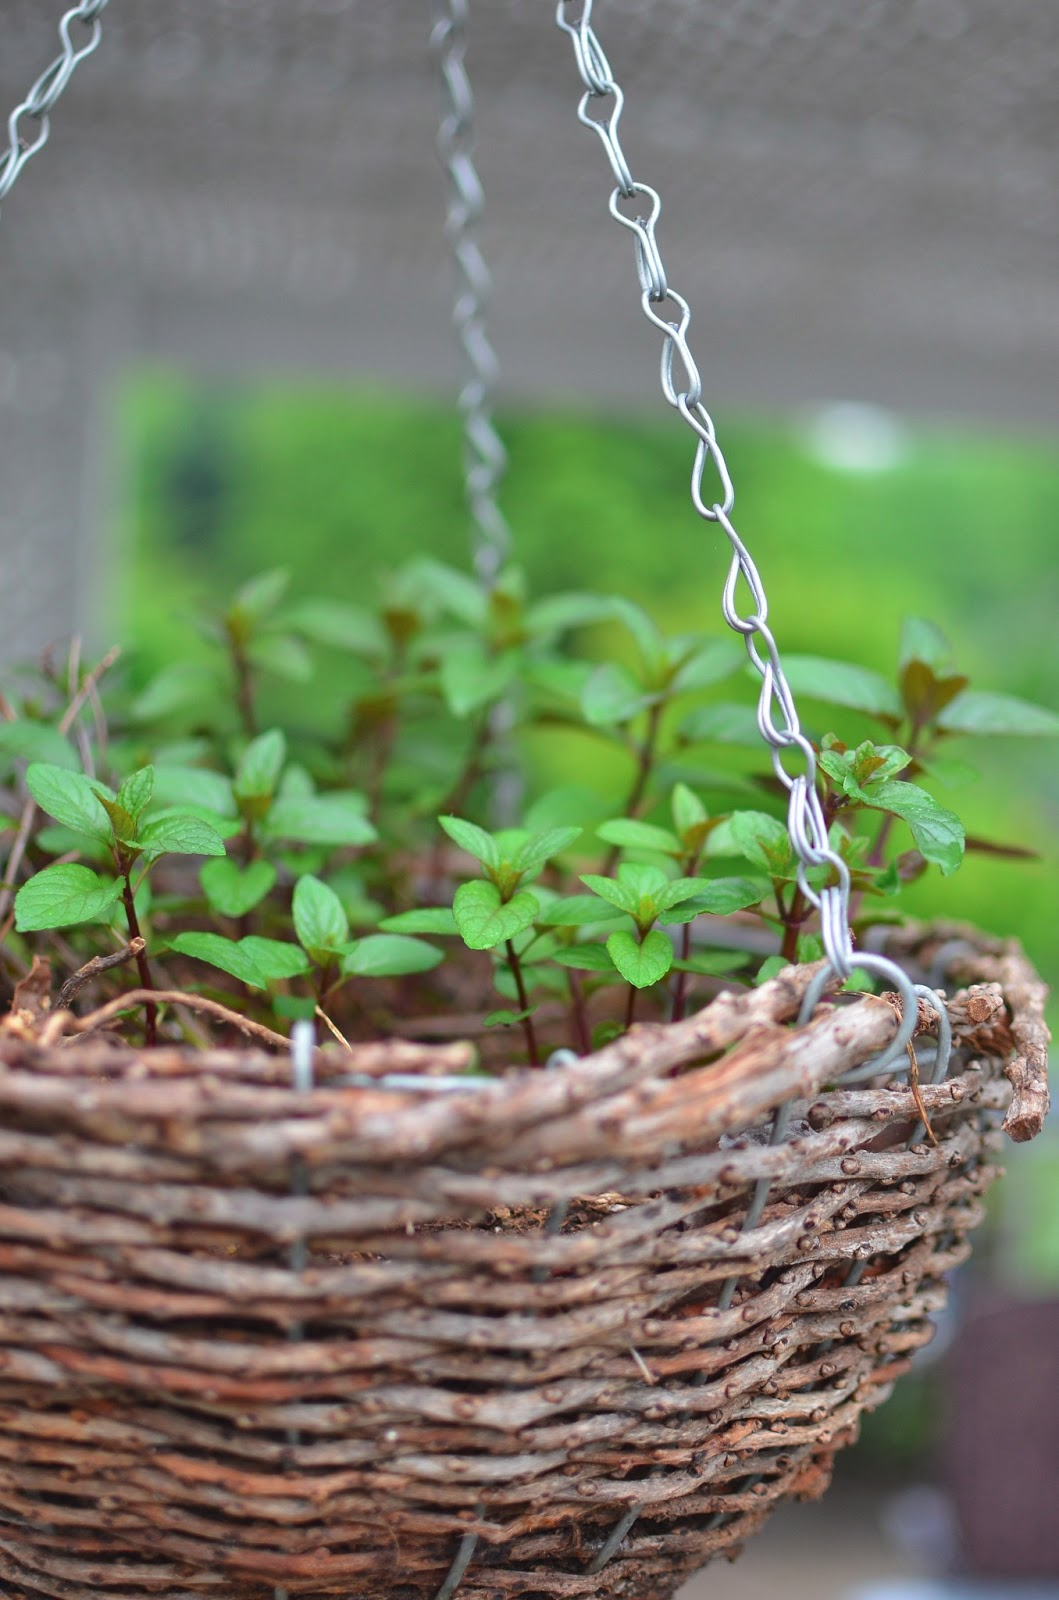 8 Easy Plants YOU Can Grow on Any Sized Deck or Patio